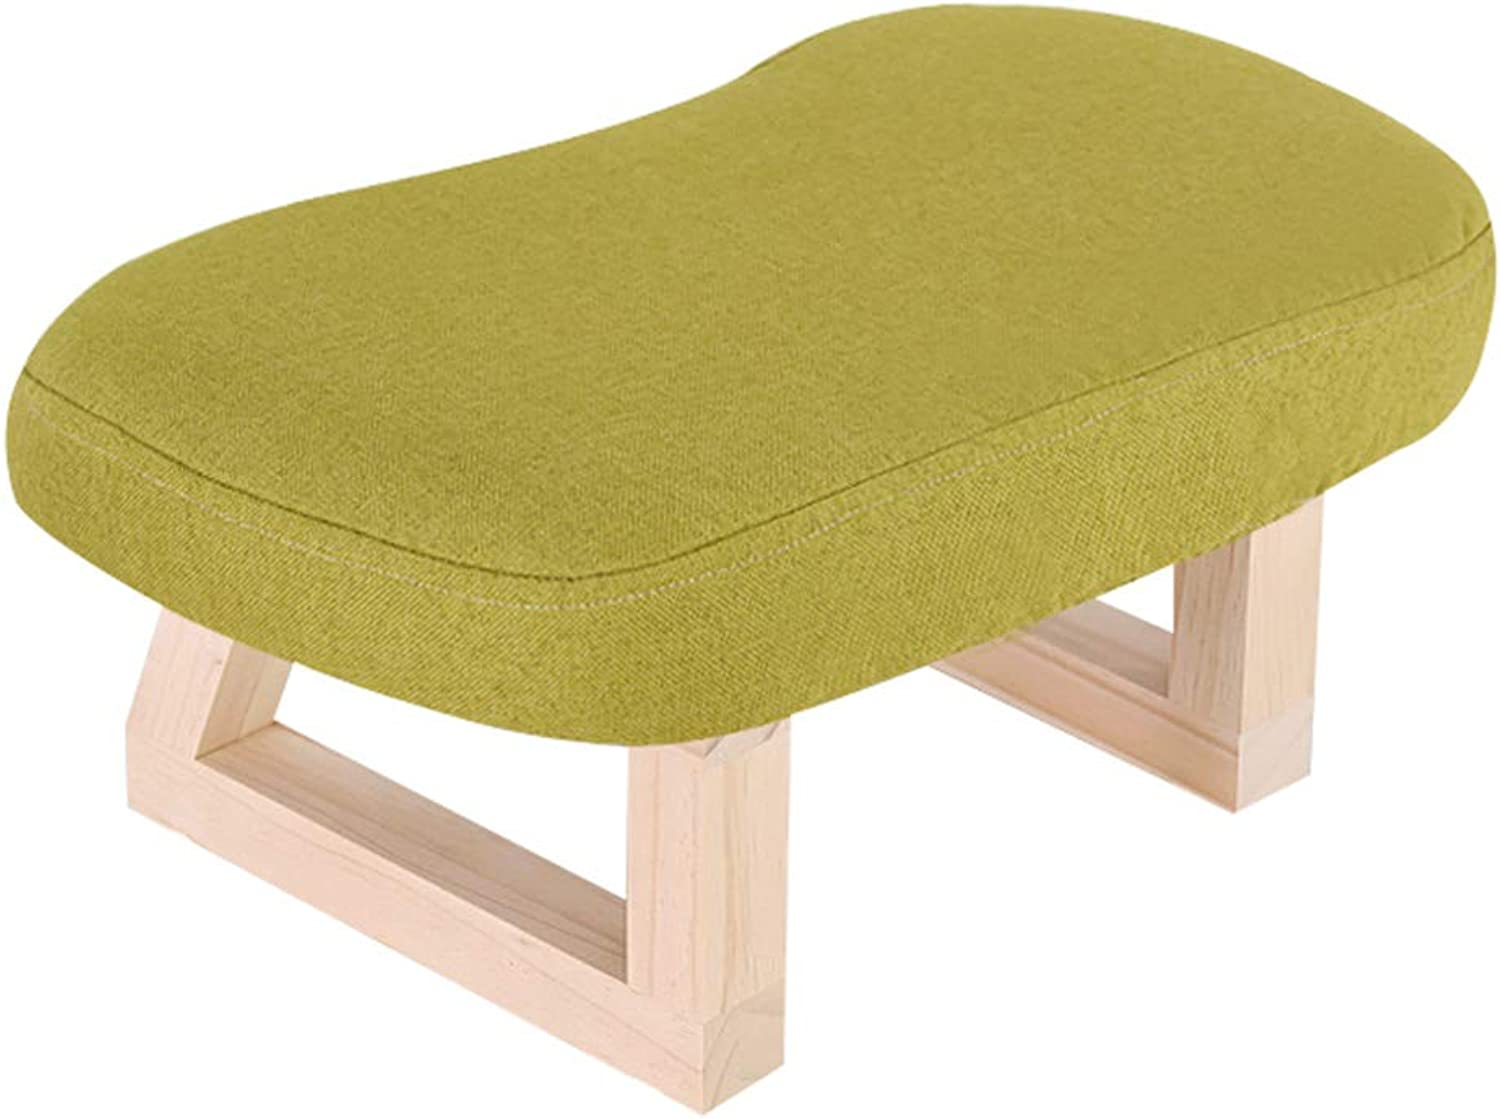 Stool - shoes Bench, Home Sofa Bench, Solid Wood Adult Stool Retro Fabric Bench